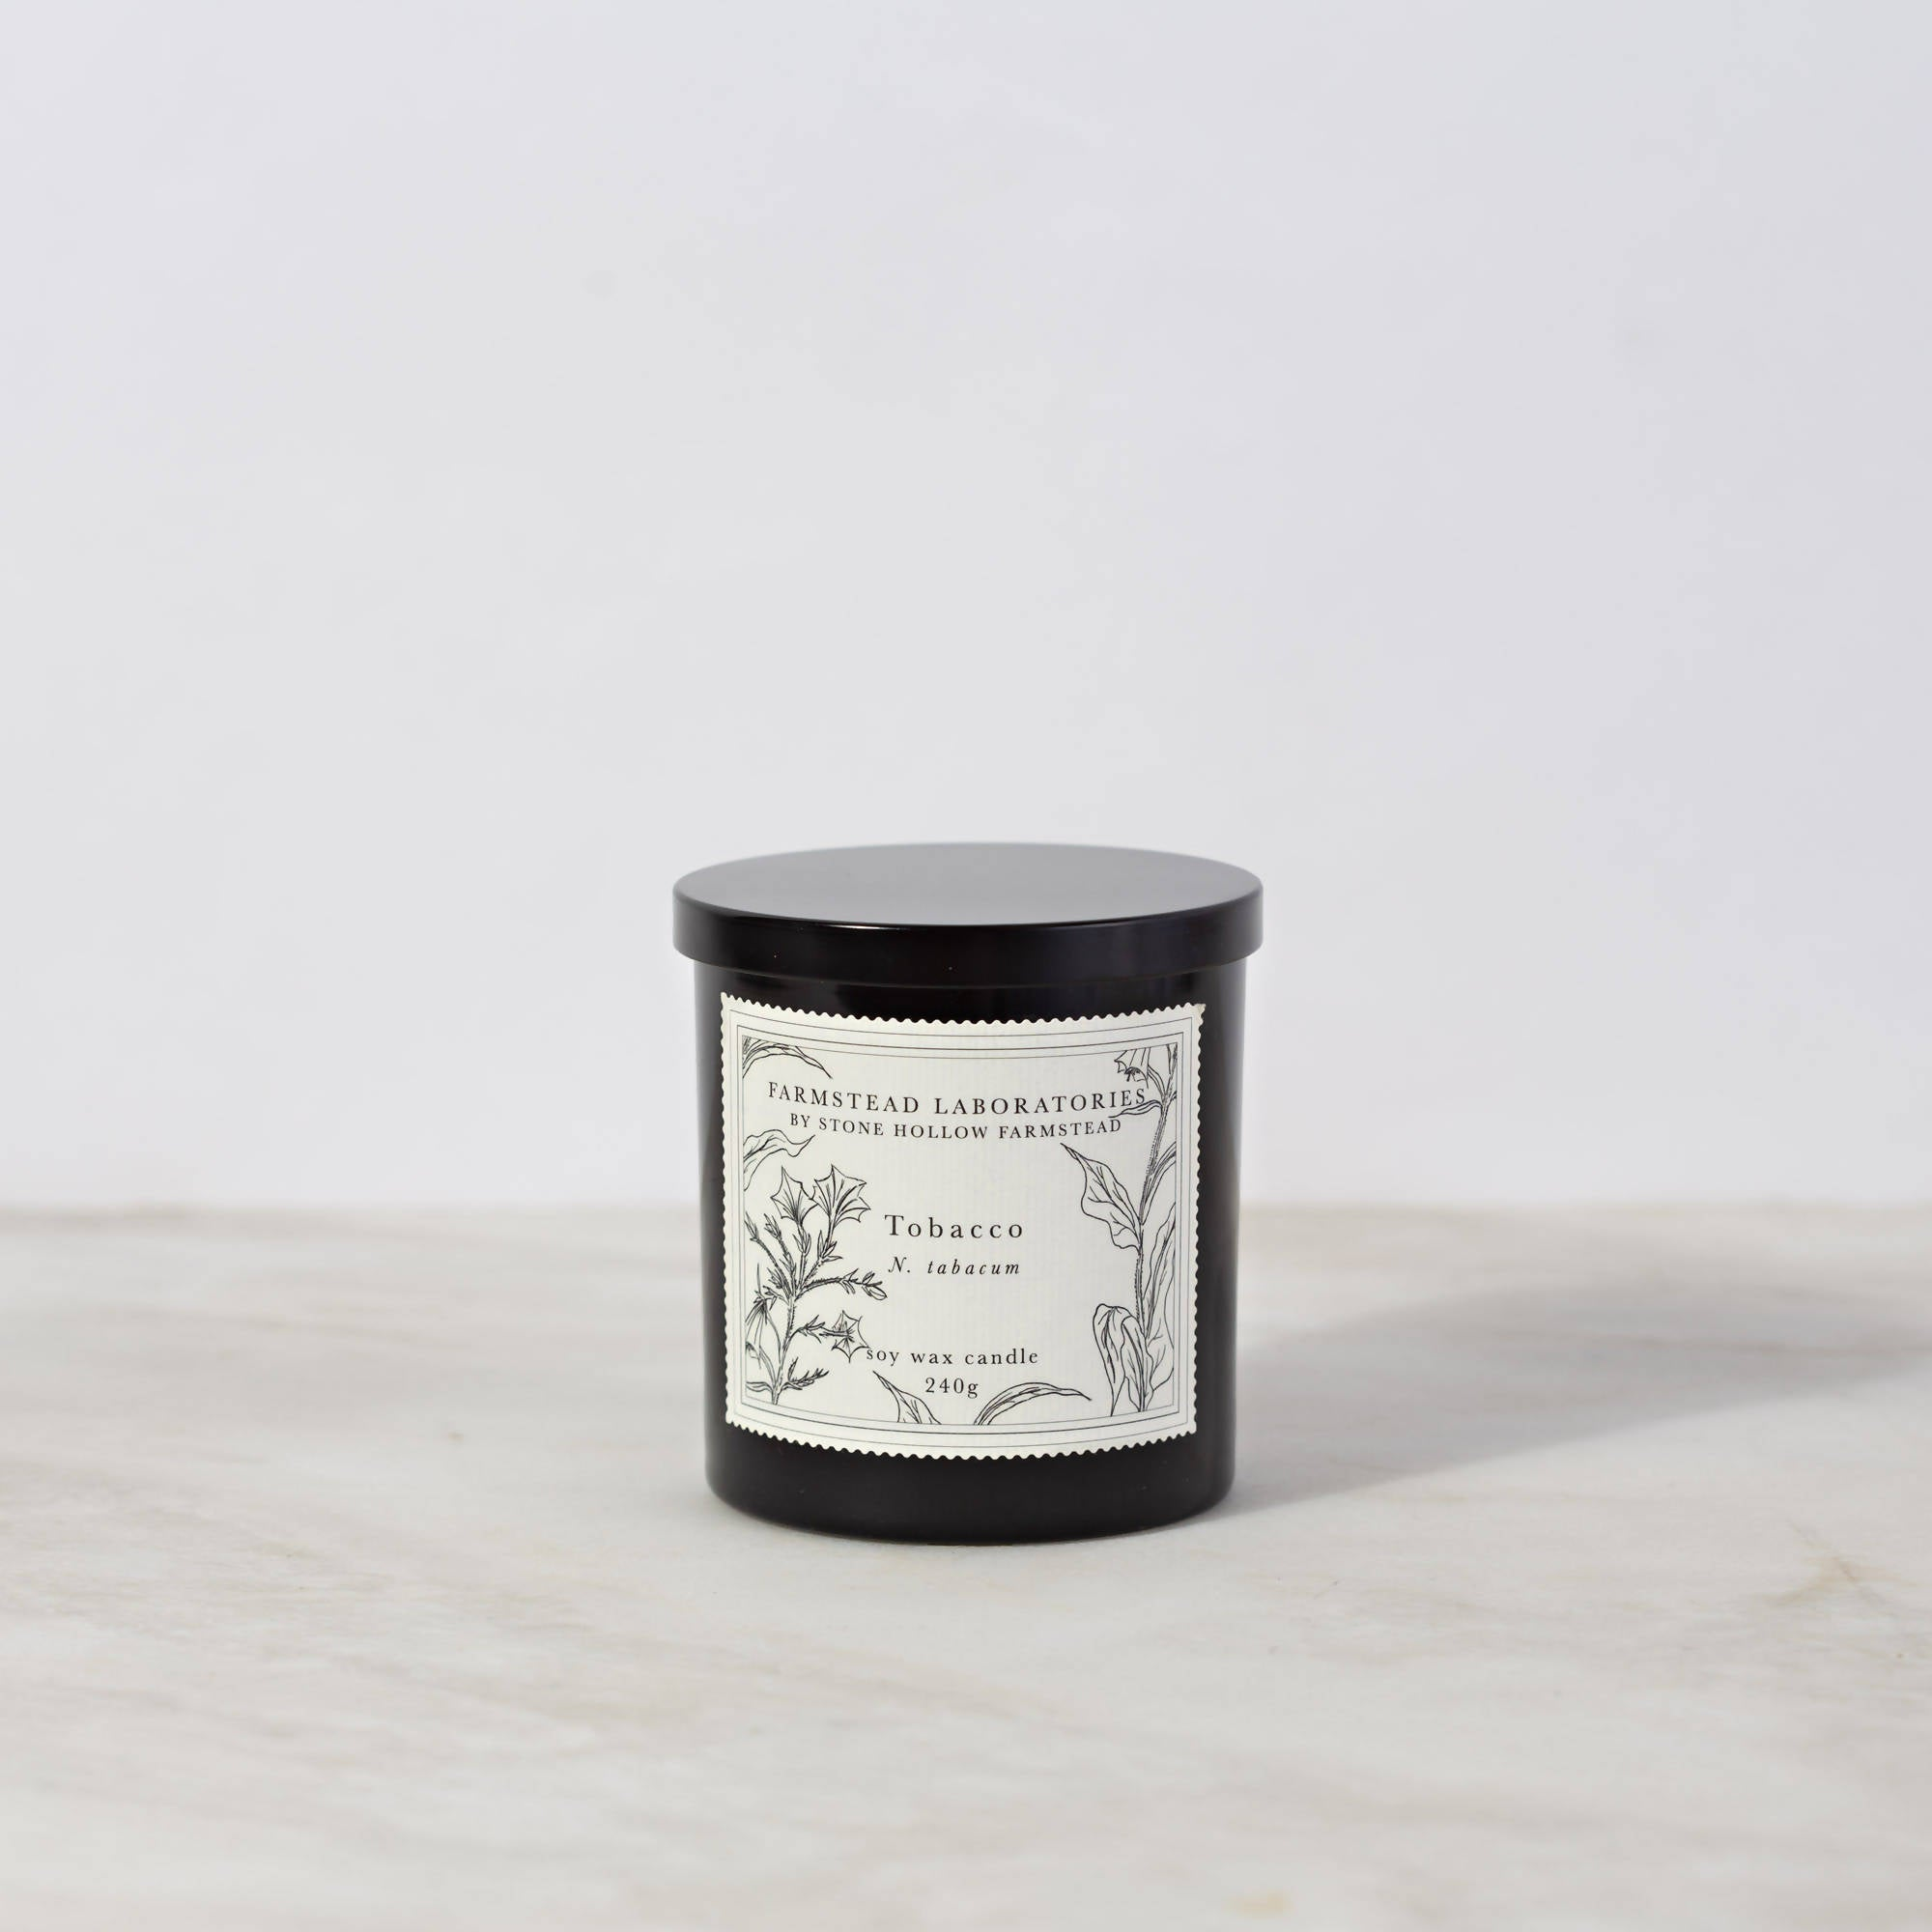 BOTANICAL SOY WAX CANDLE / TOBACCO